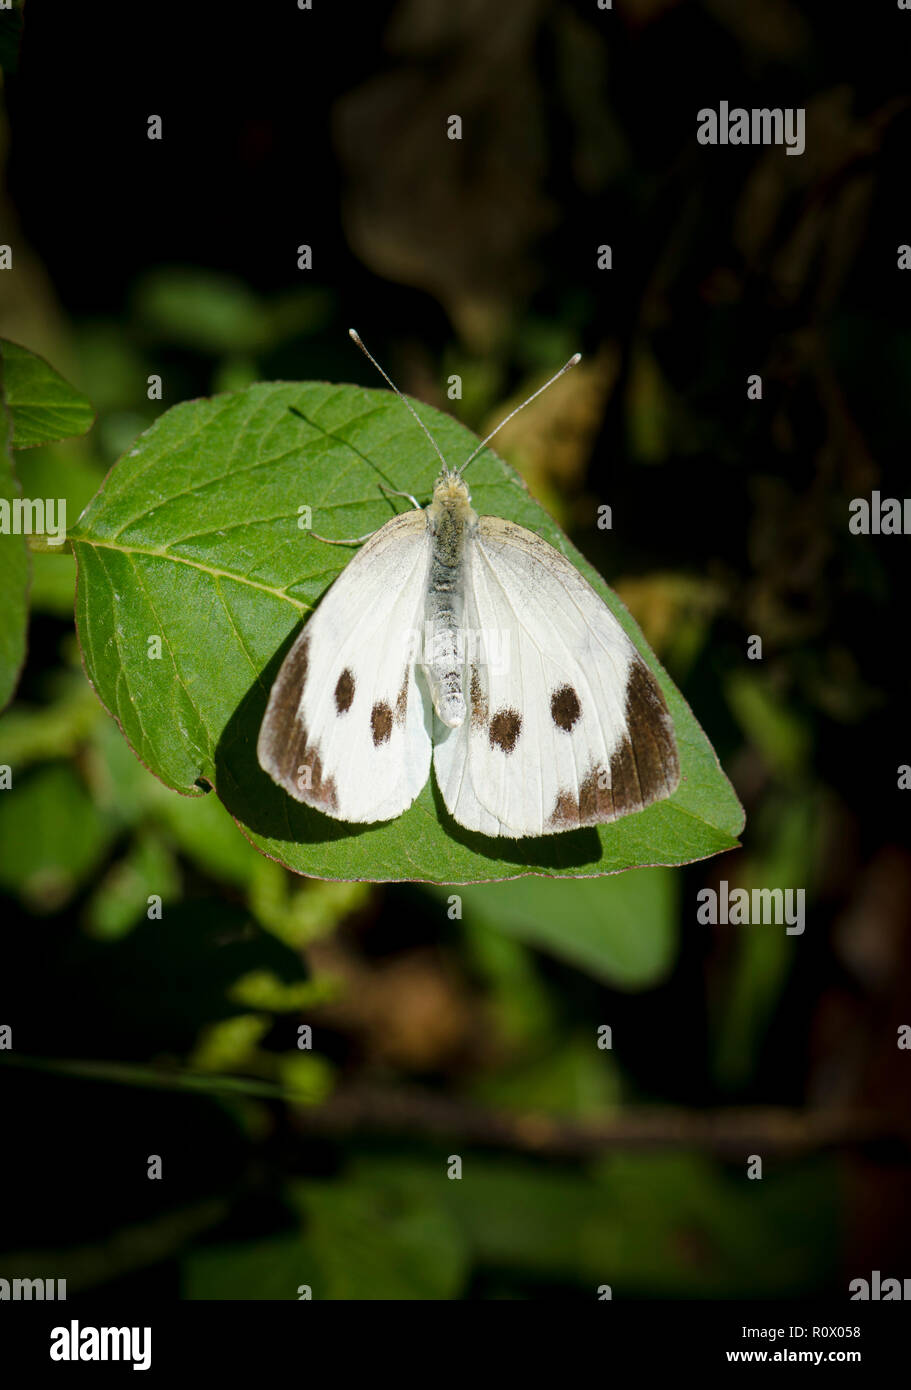 Large white, cabbage butterfly, cabbage white, Piers brassiere, resting on leaf, Andalusia, Spain. - Stock Image